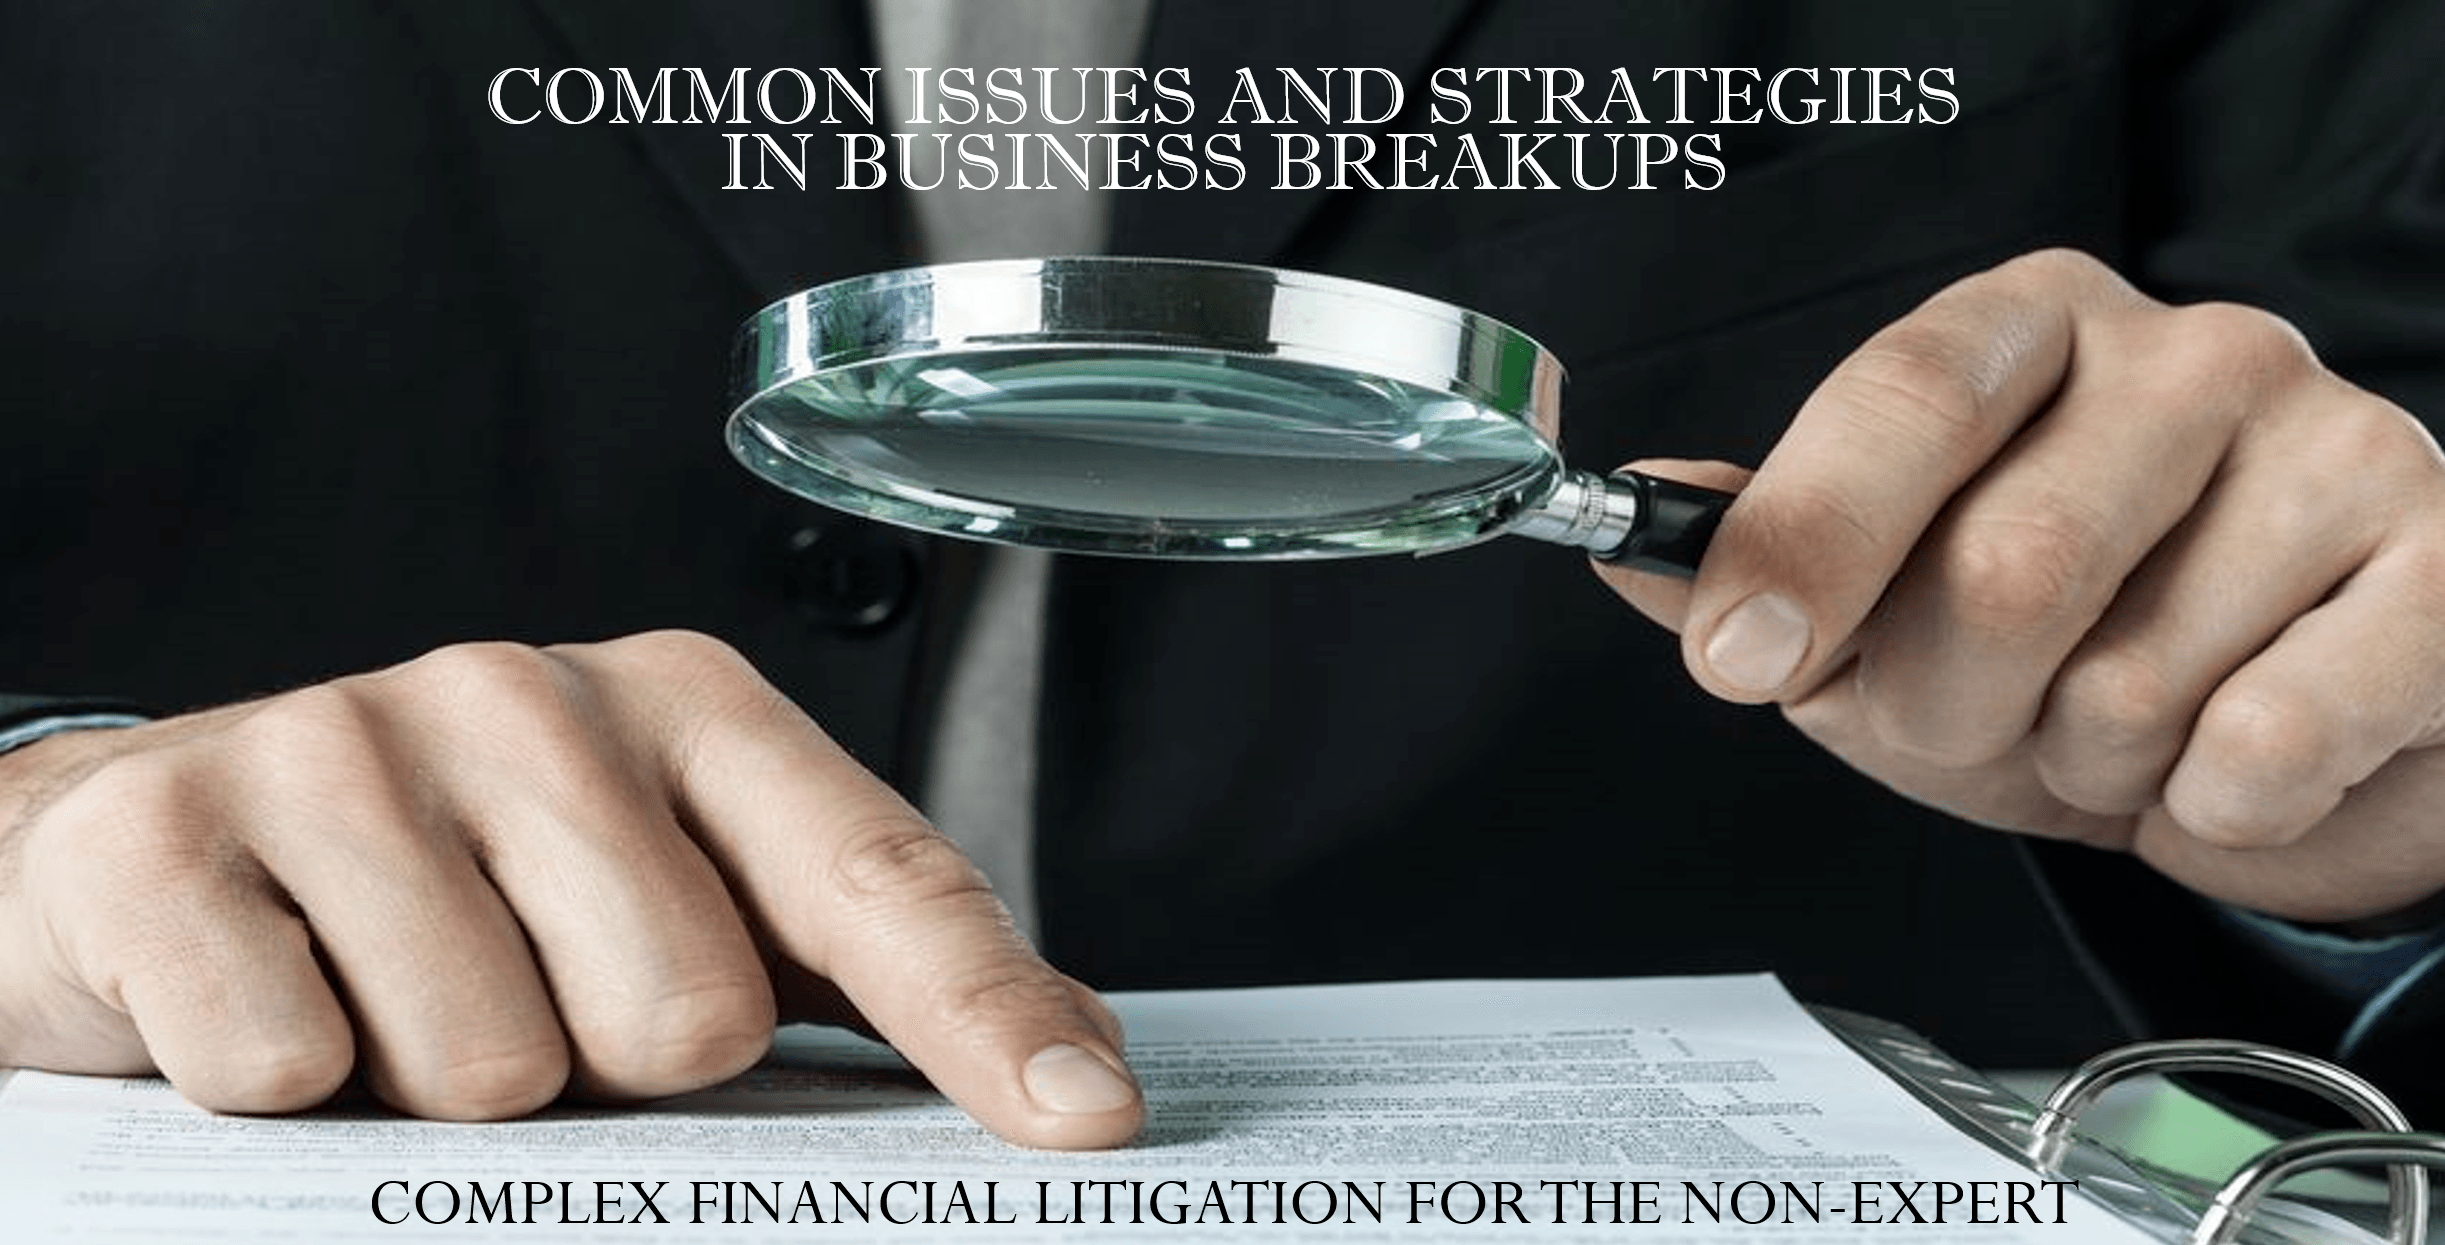 Breaking Up is Hard to Do—Common Issues and Strategies in Business Divorce